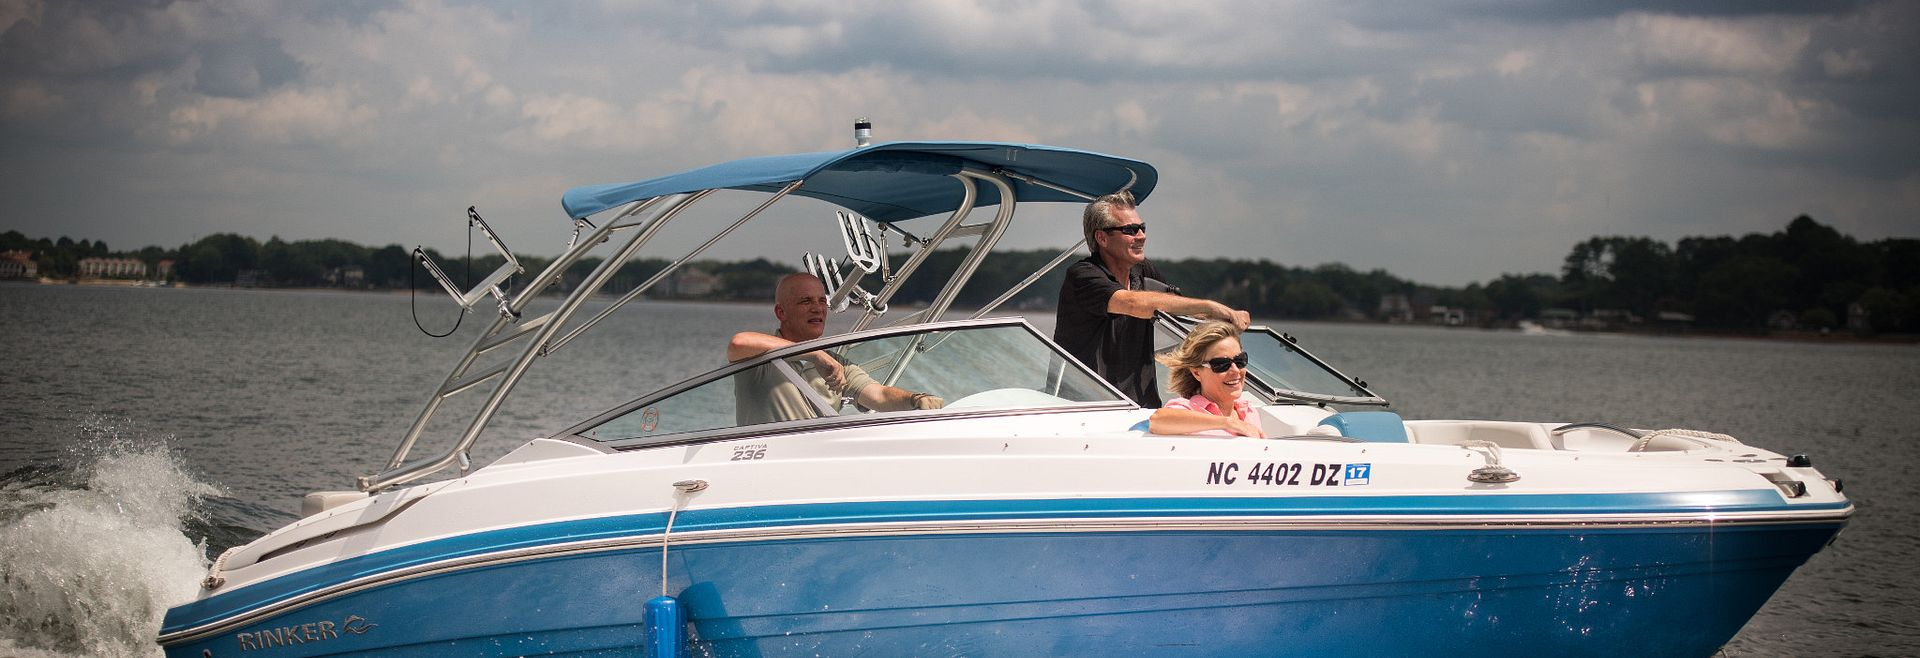 People on a Boat on Lake Norman